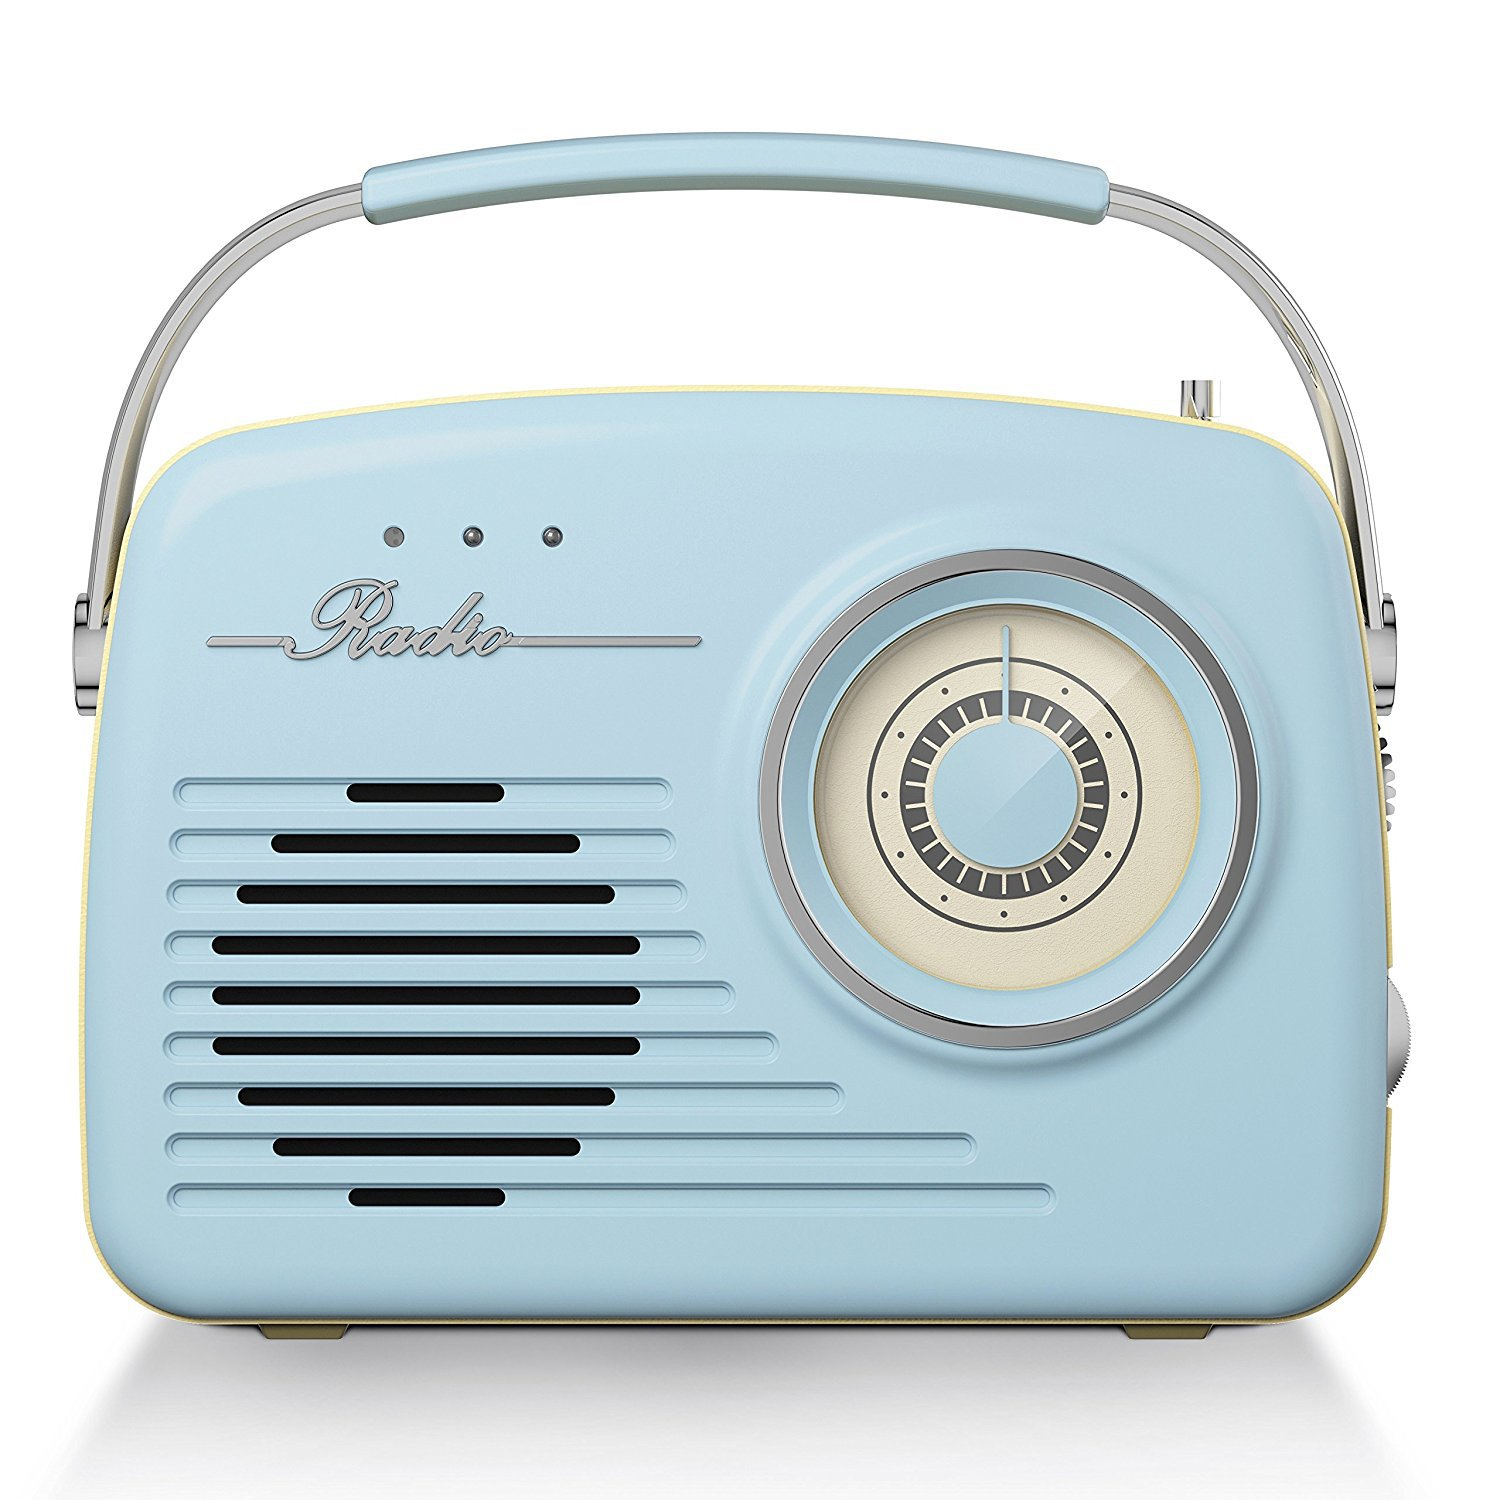 Akai AM/FM Retro Radio